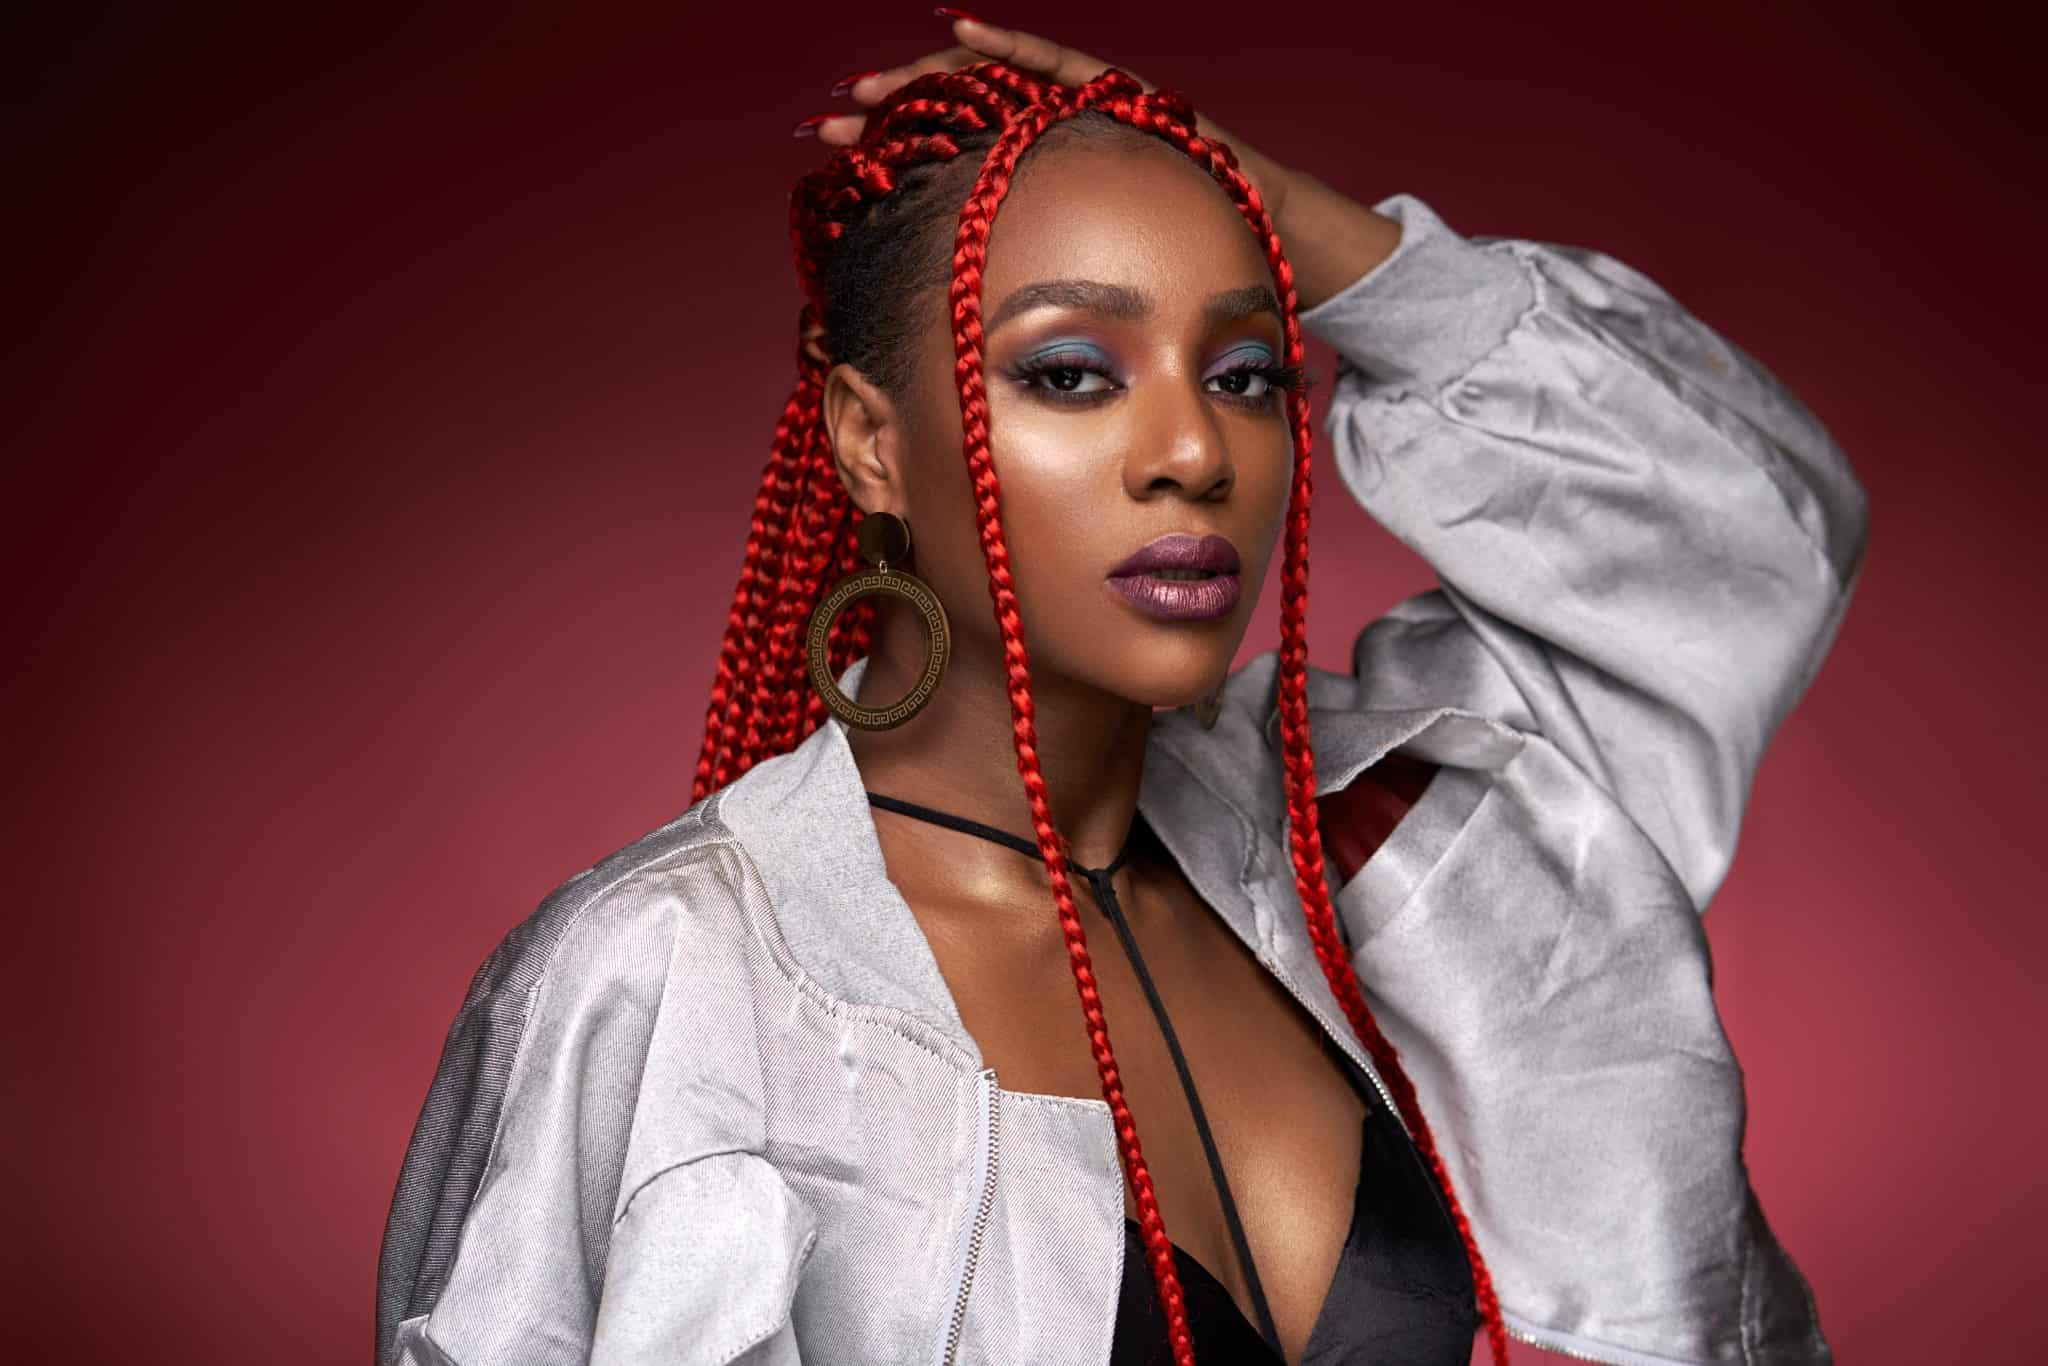 Interview: GoodGirl LA on her debut EP, religion and her musical influences